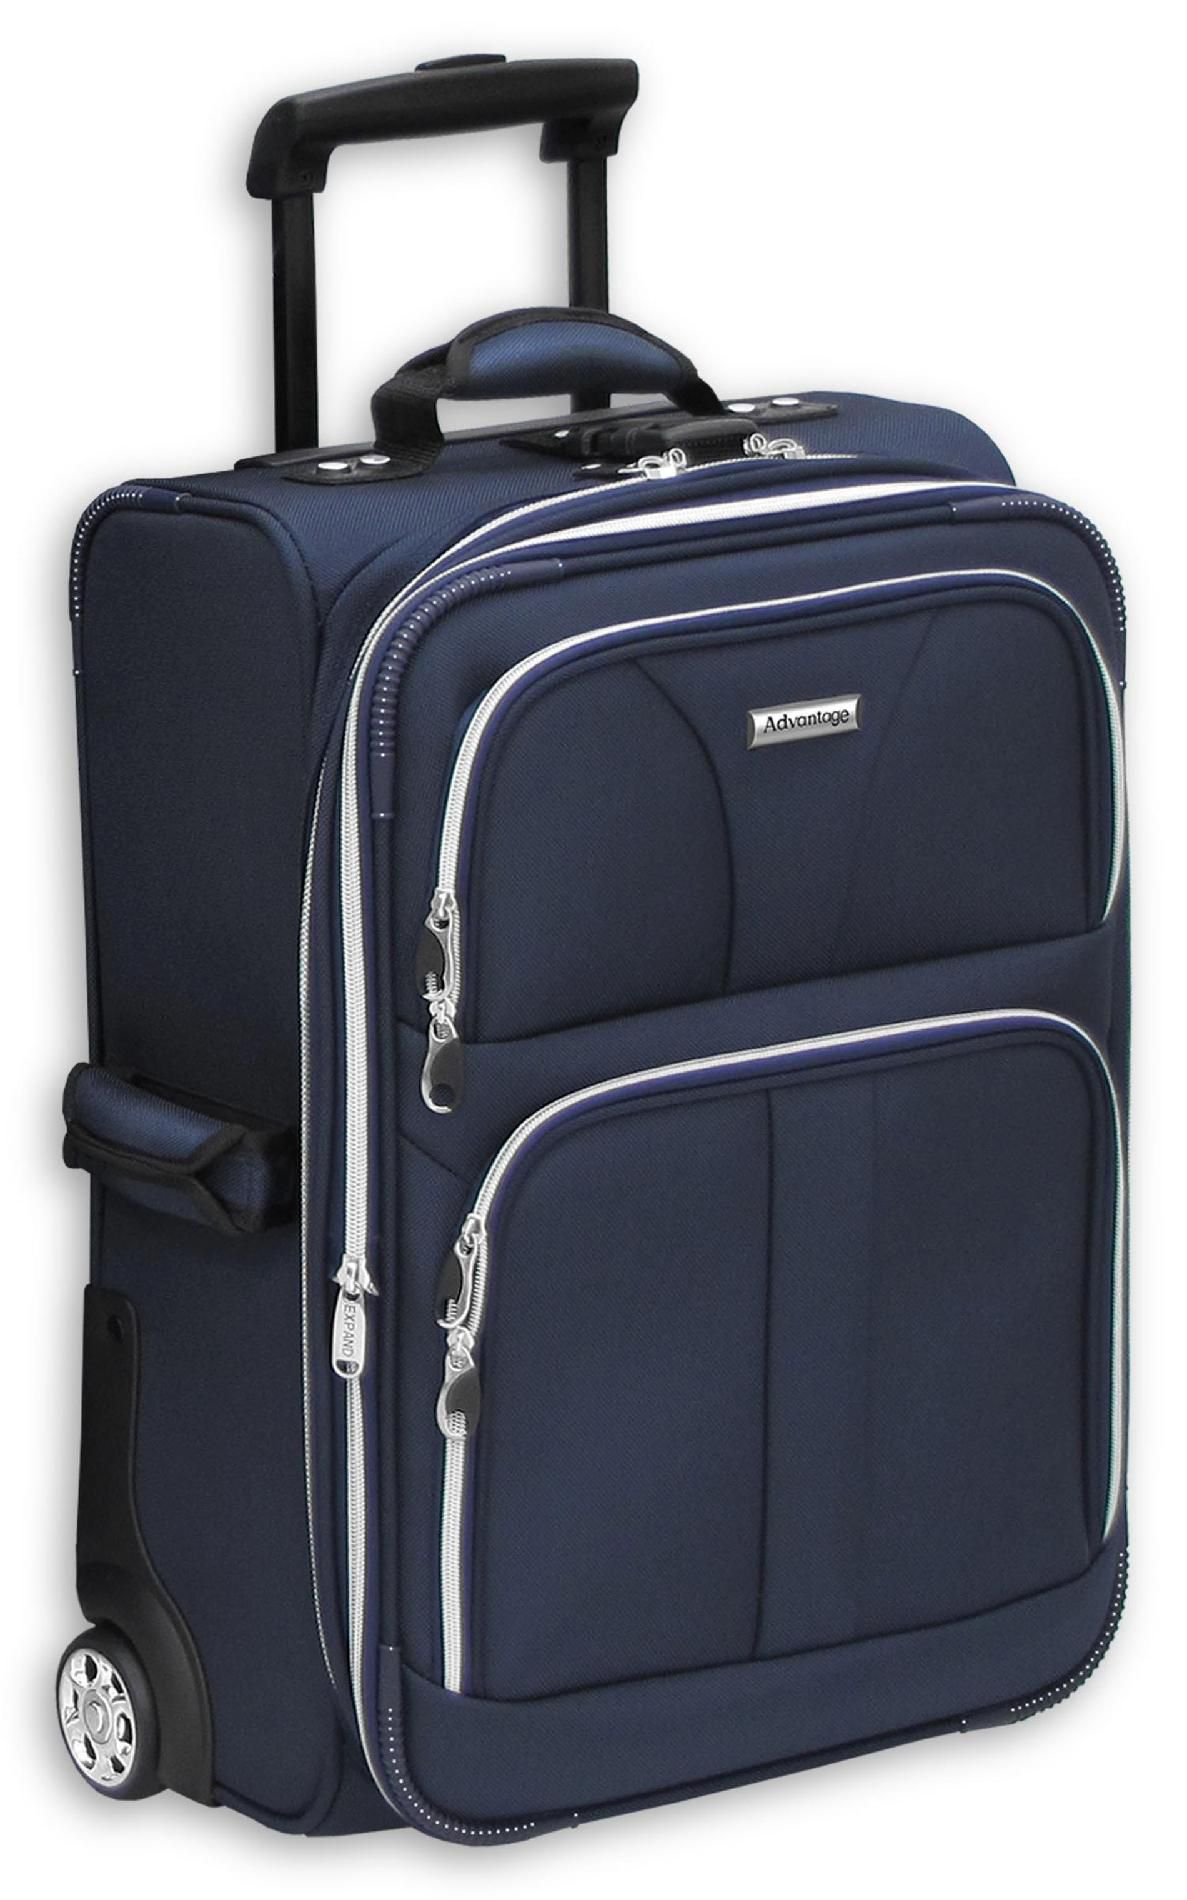 Leisure Luggage 28in Upright Advantage Silver Lite - Navy